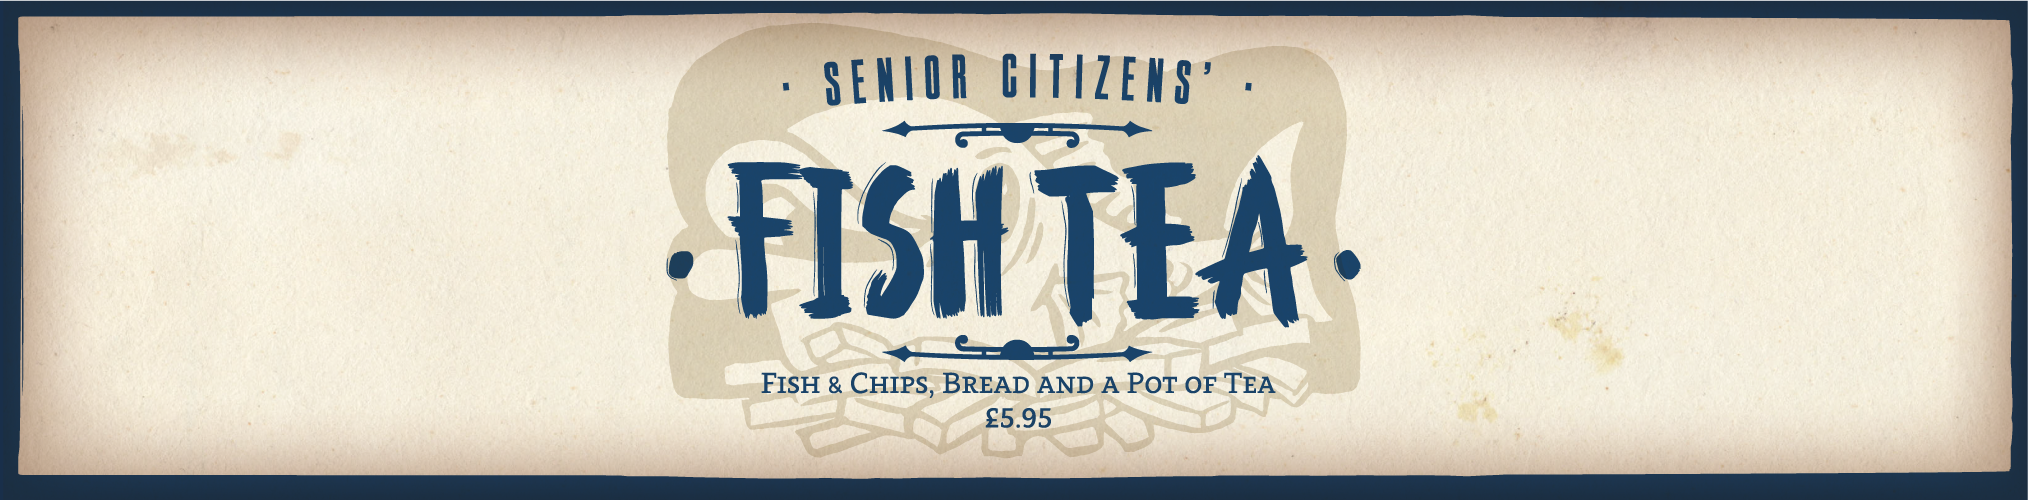 Loks_Snr-Citizens-Fish-Tea_website-scroller